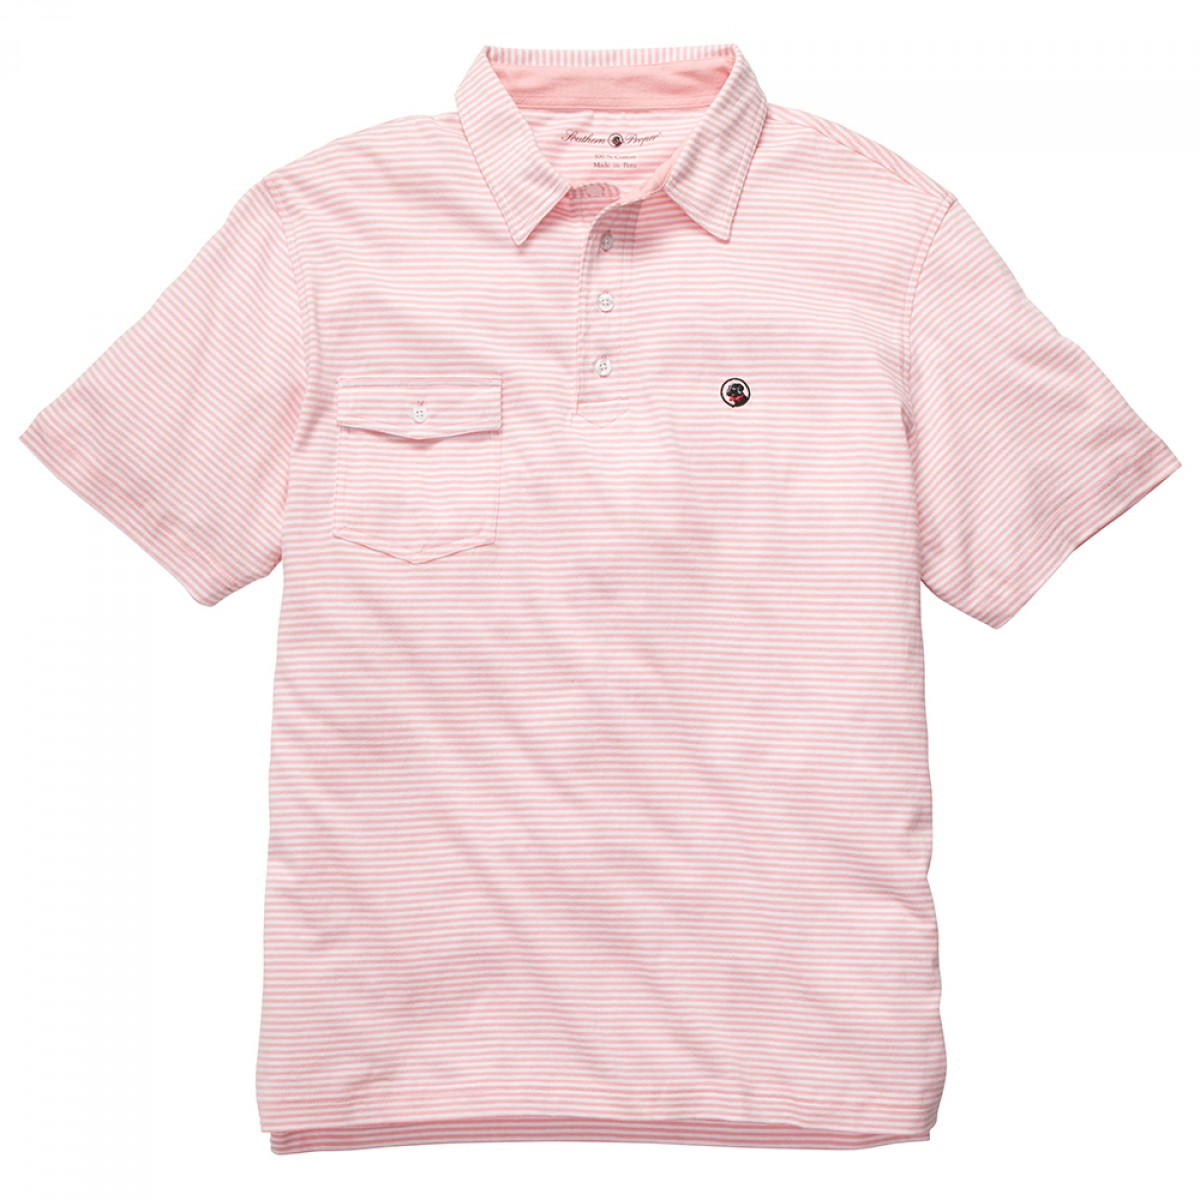 Tourney Shirt - Pink Stripe